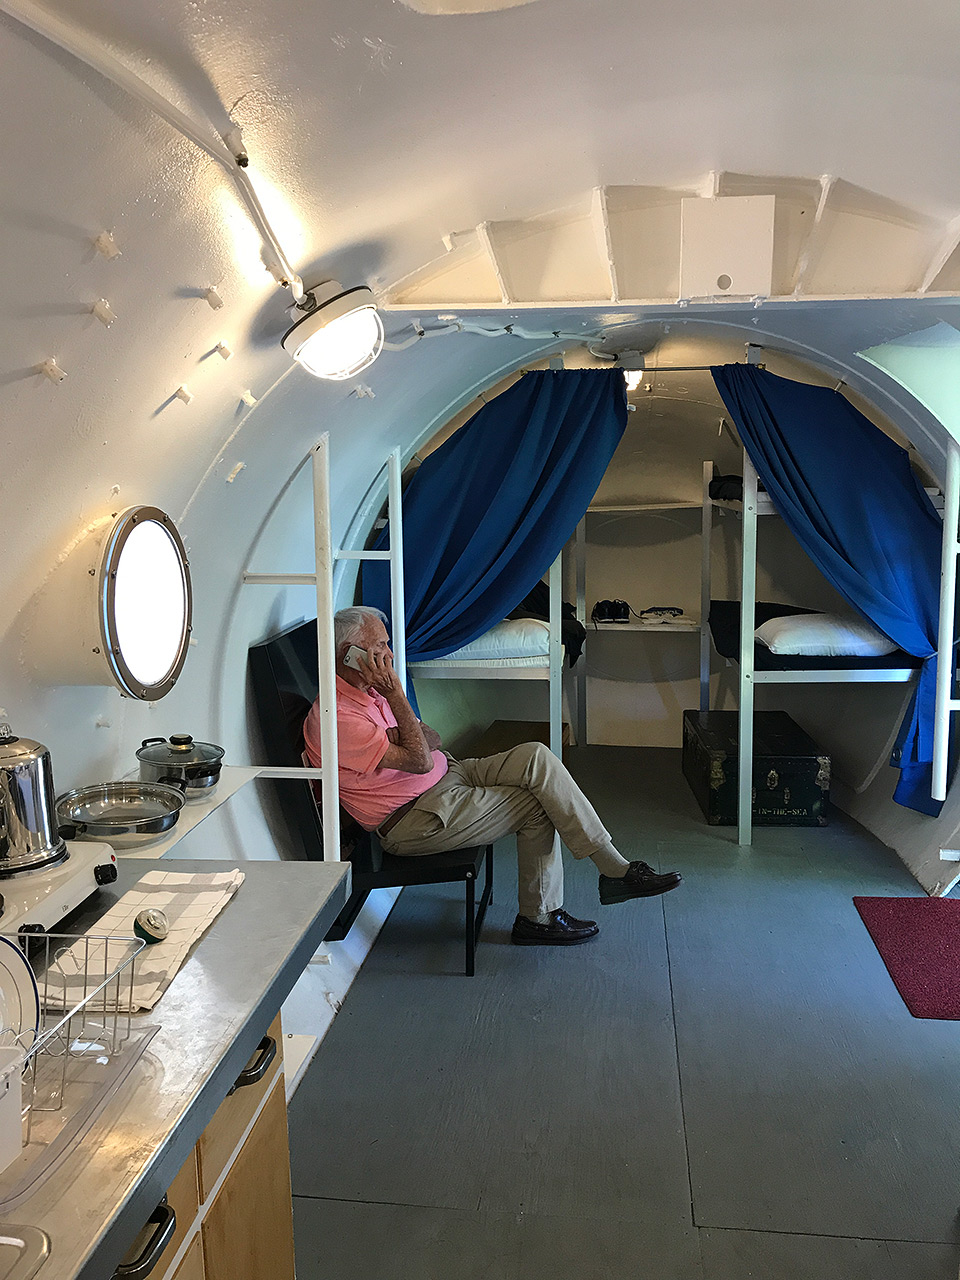 171023-man-in-the-sea-museum-sealab1-interior-bunk